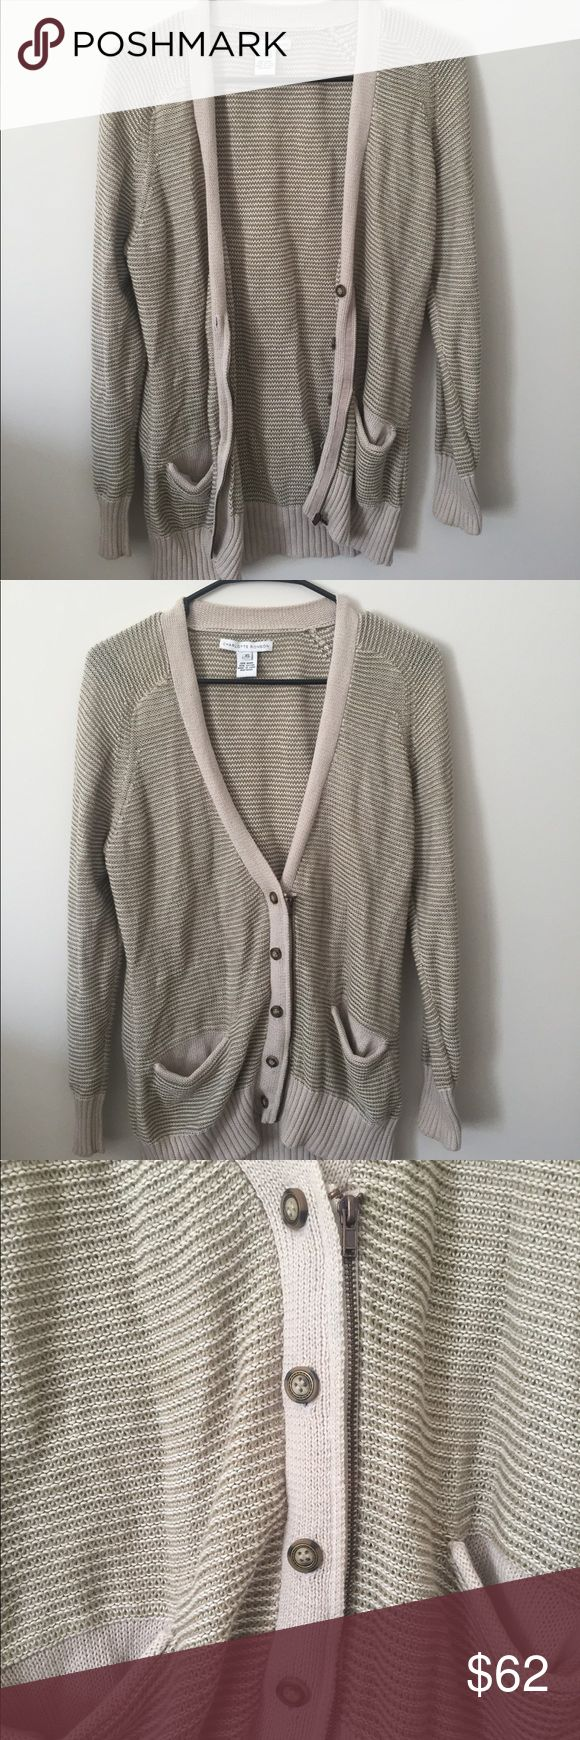 *Charlotte Ronson striped cardigan, nice fit!* Only worn a few times, this striped cardigan can dress up any of your simple outfits. A simple white shirt, denim jeans and booties with this cardigan will have heads turning towards you. You can zip the front or button it...or both! Charlotte Ronson Sweaters Cardigans